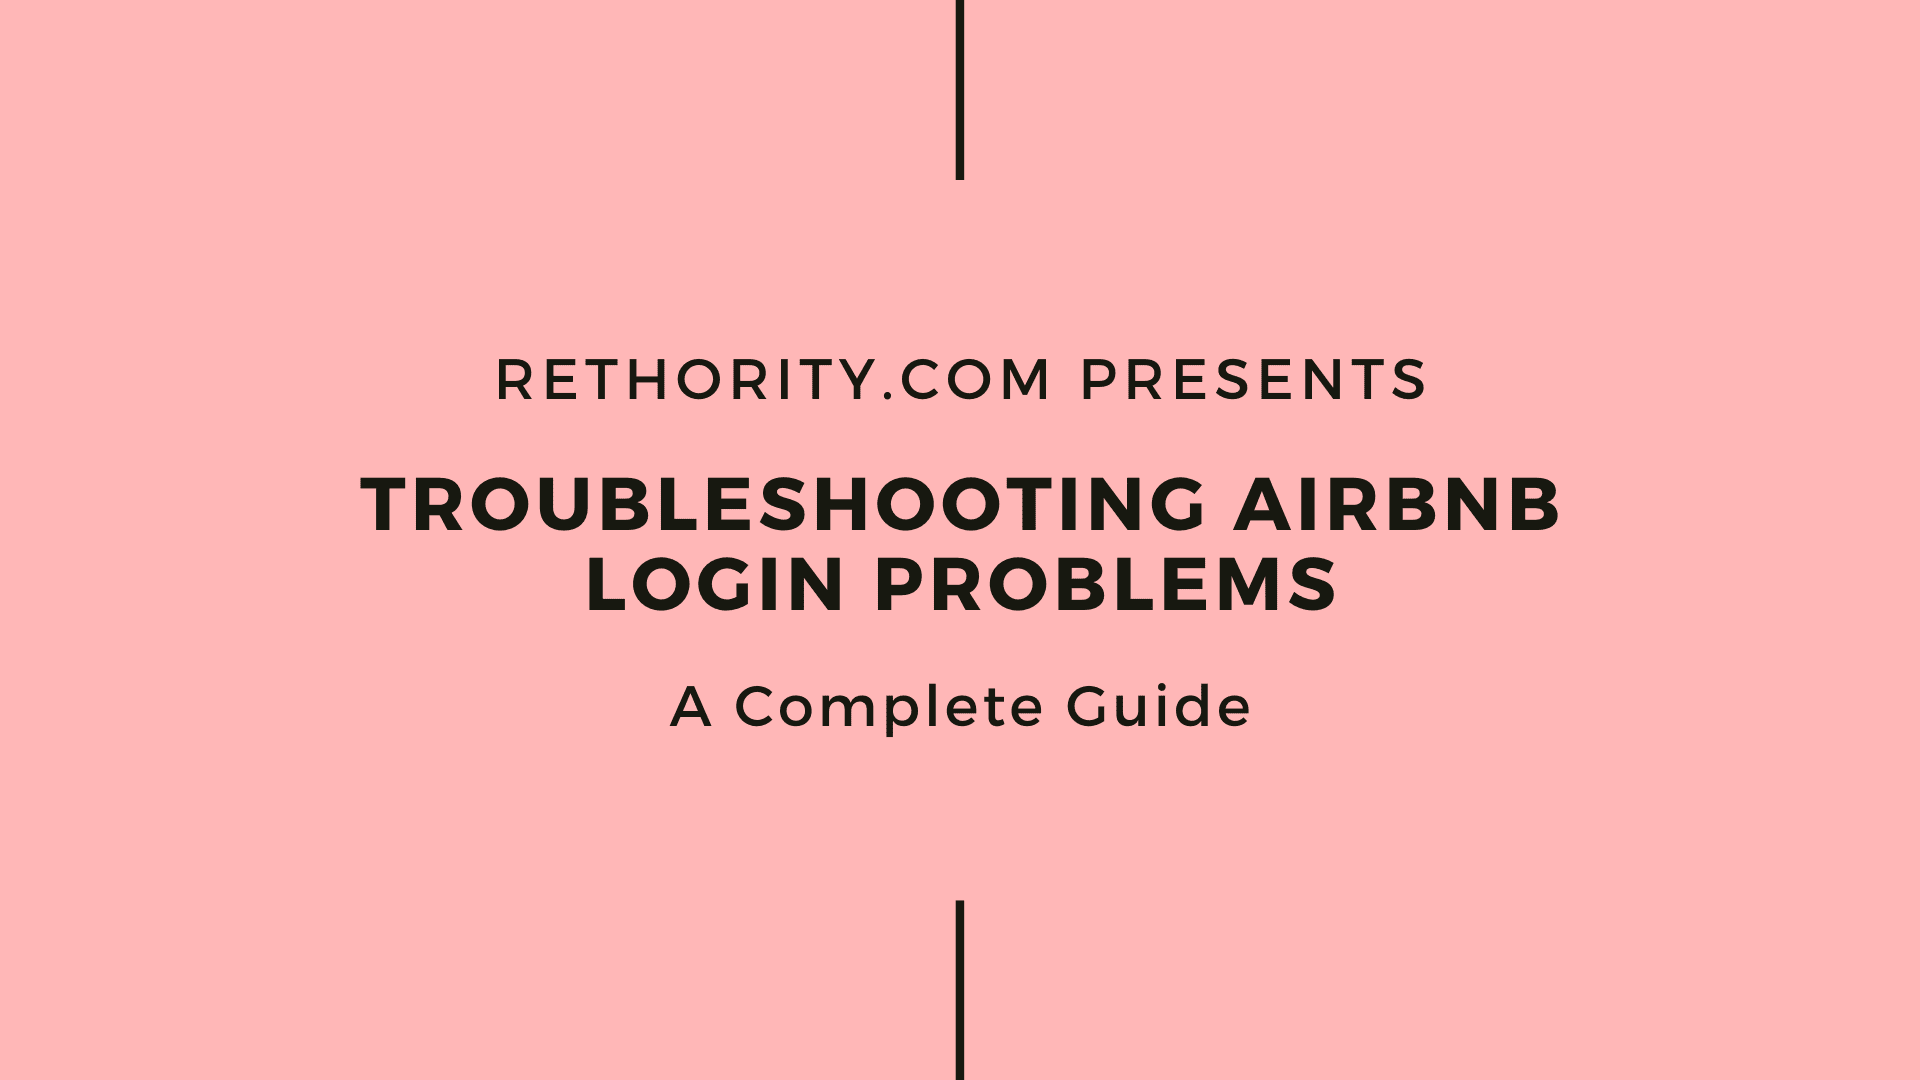 Troubleshooting Airbnb Login Problems